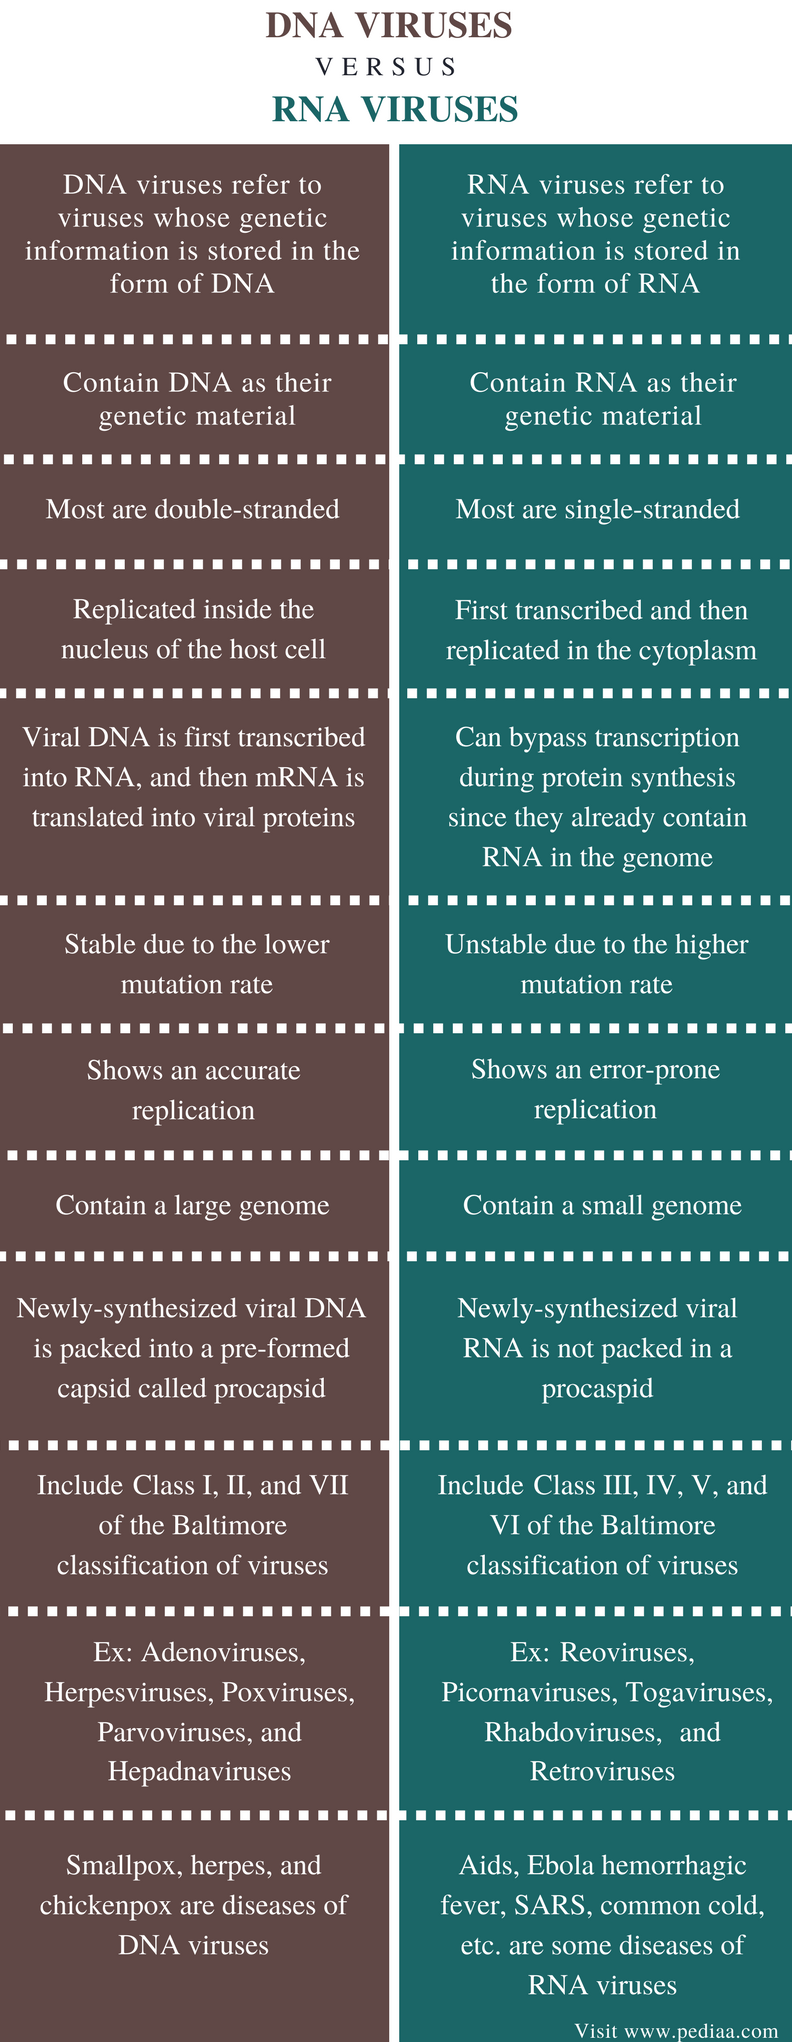 Difference Between DNA and RNA Viruses - Comparison Summary